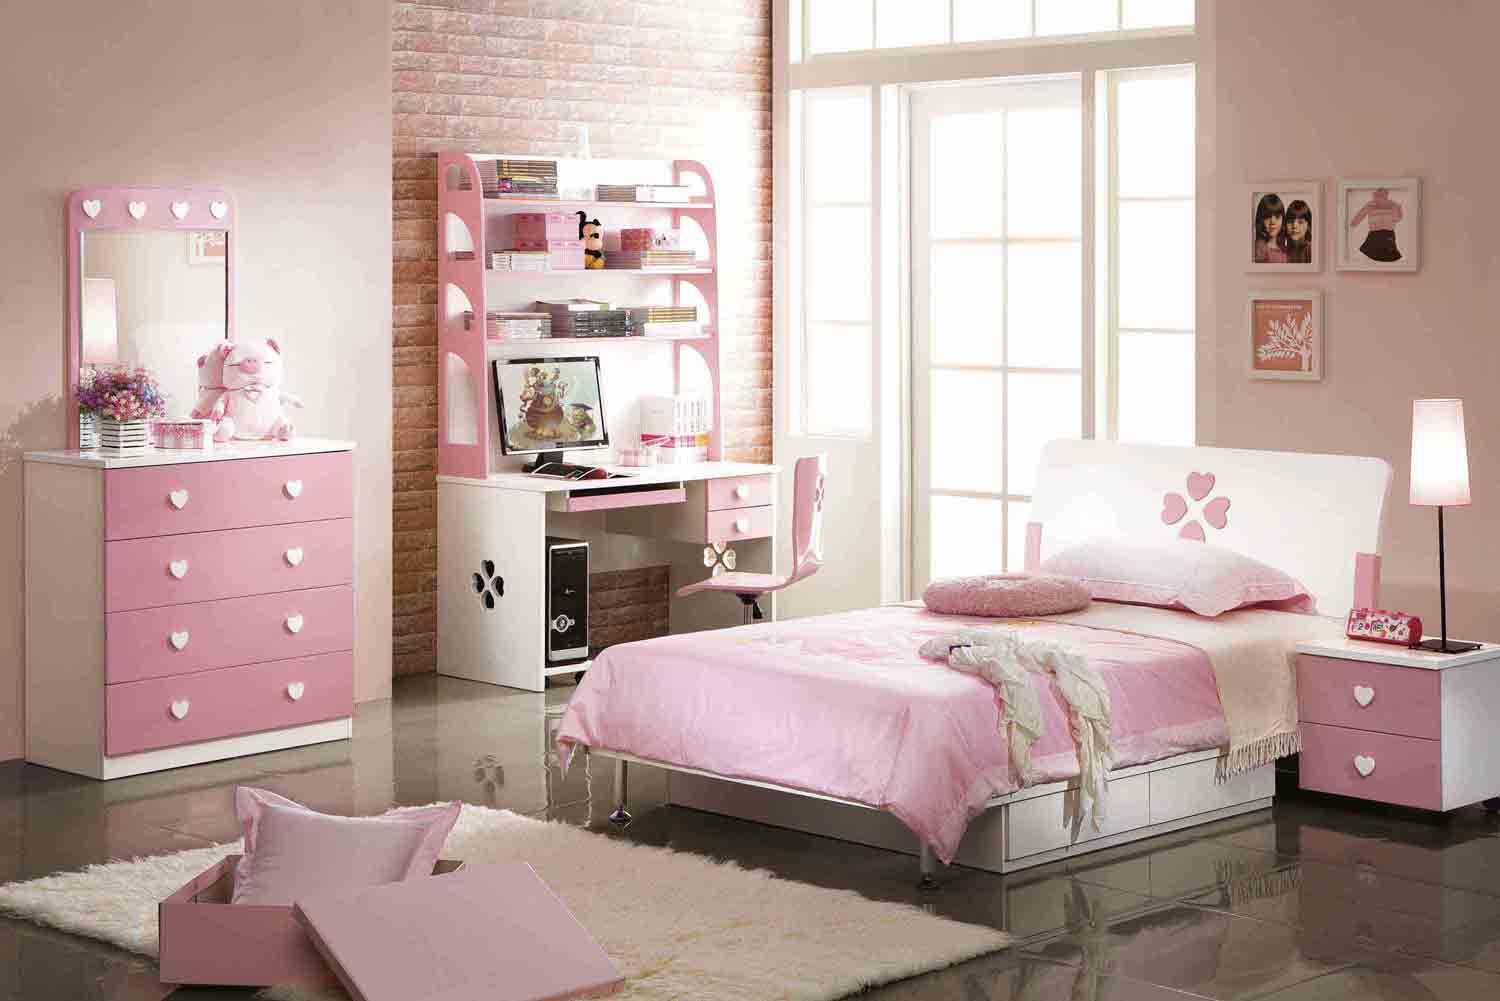 An Ideal Color Scheme For A Small Bedroom, A Grayed Pale Pink For A Relaxing Quality